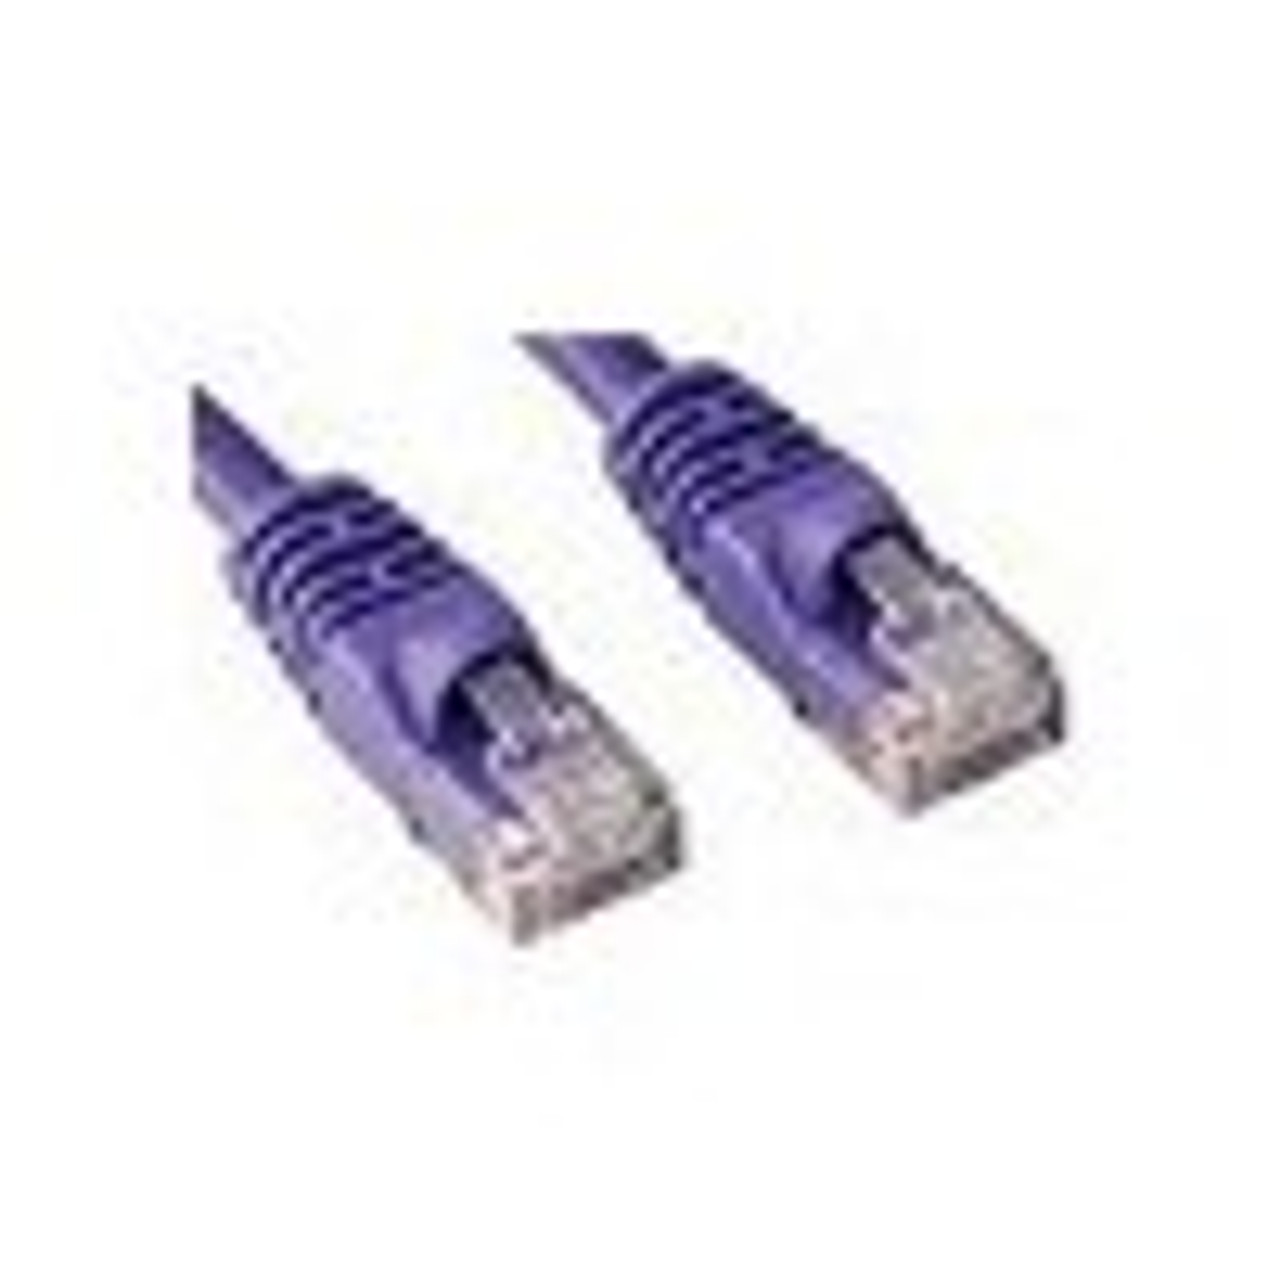 Product image for 0.5M CAT6  PATCH CORD PURPLE Network Cable | CX Computer Superstore